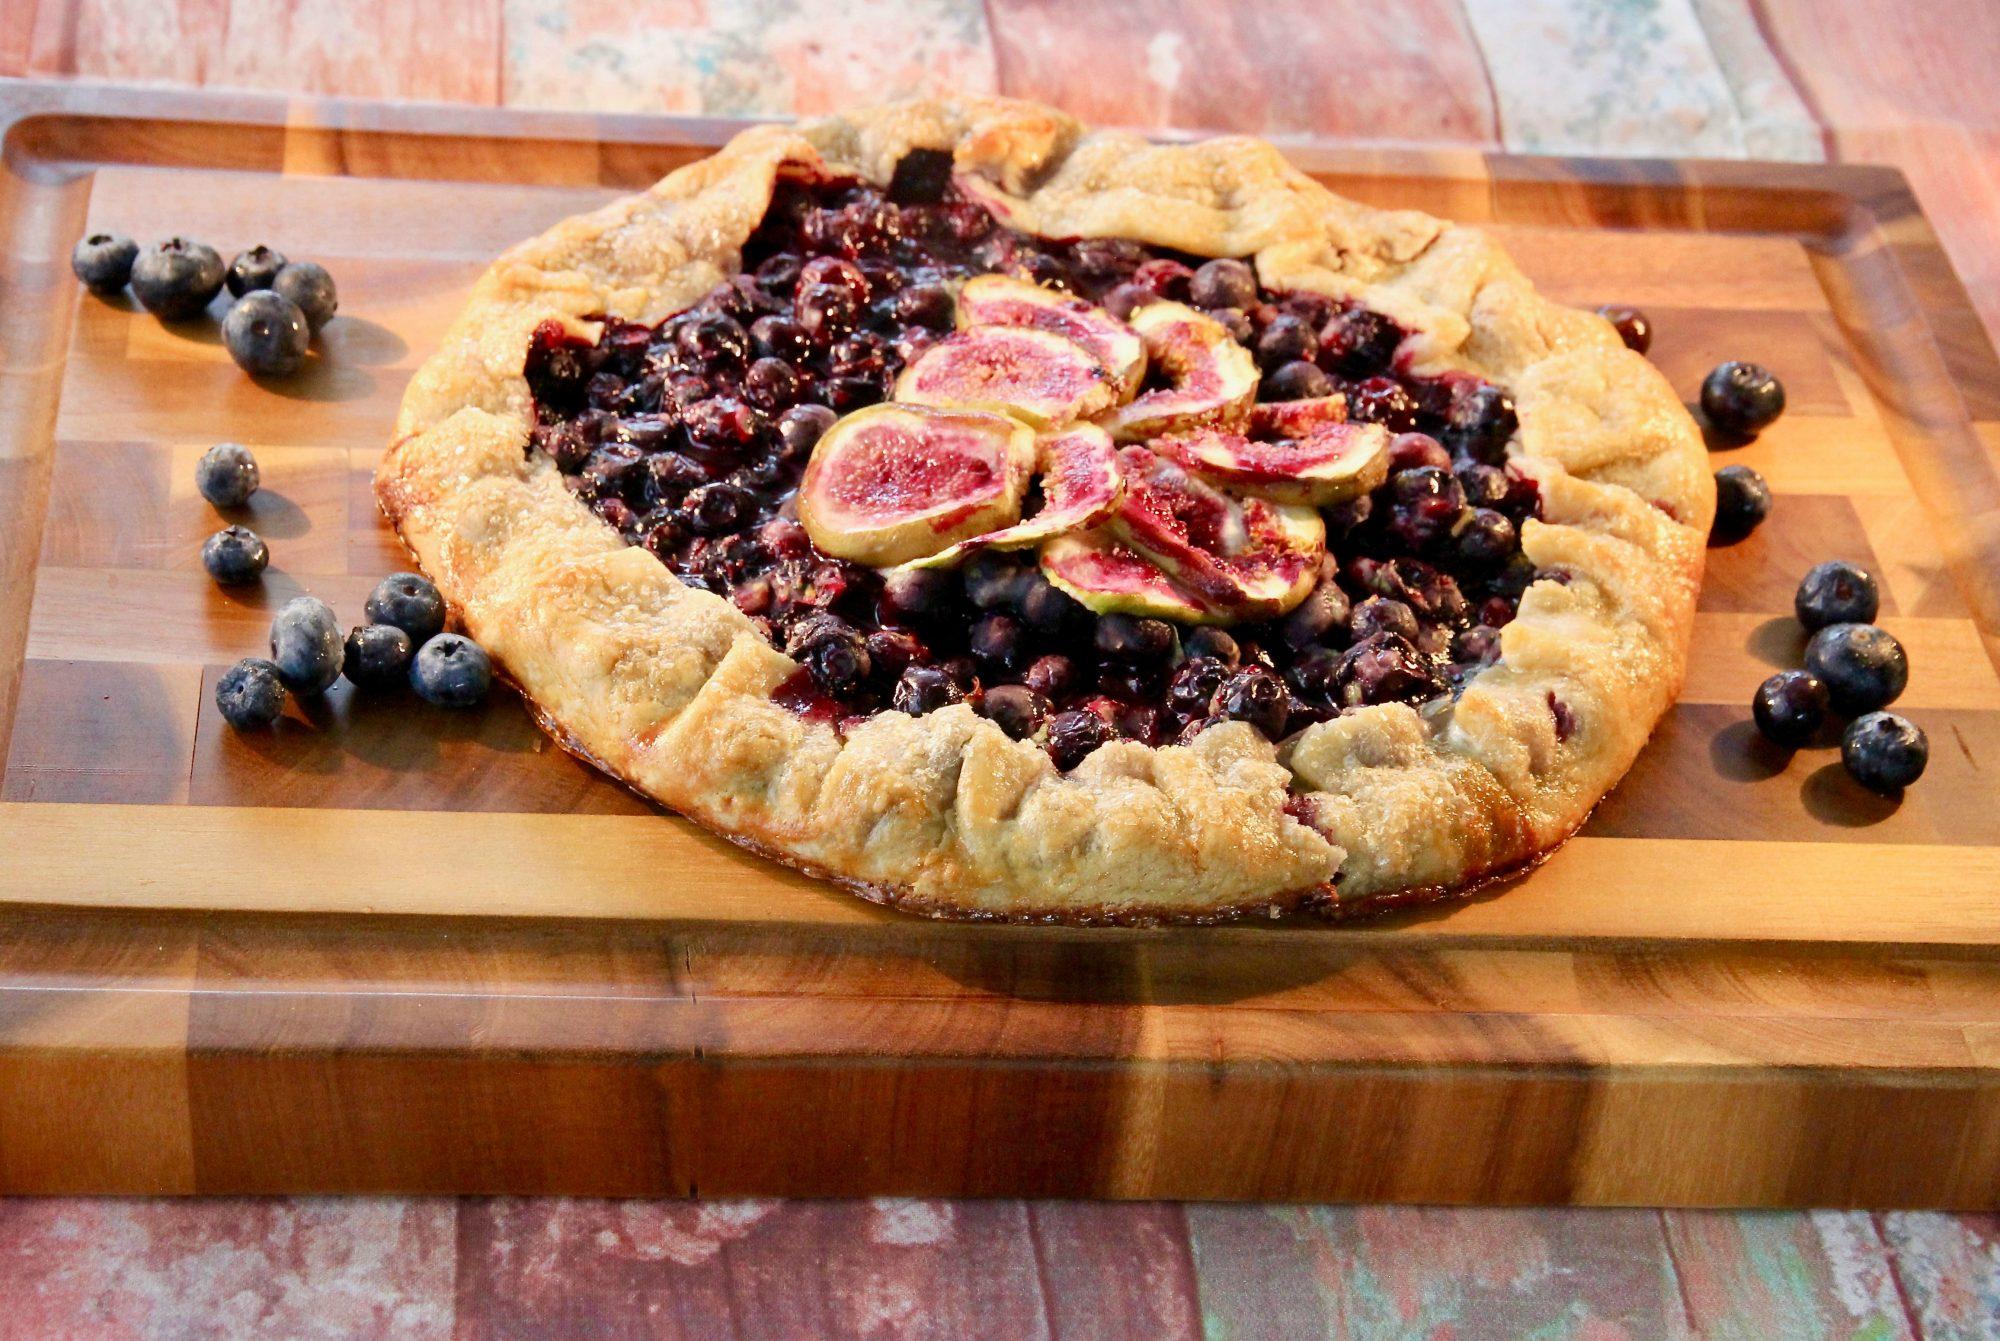 crostata with blueberries and fresh figs